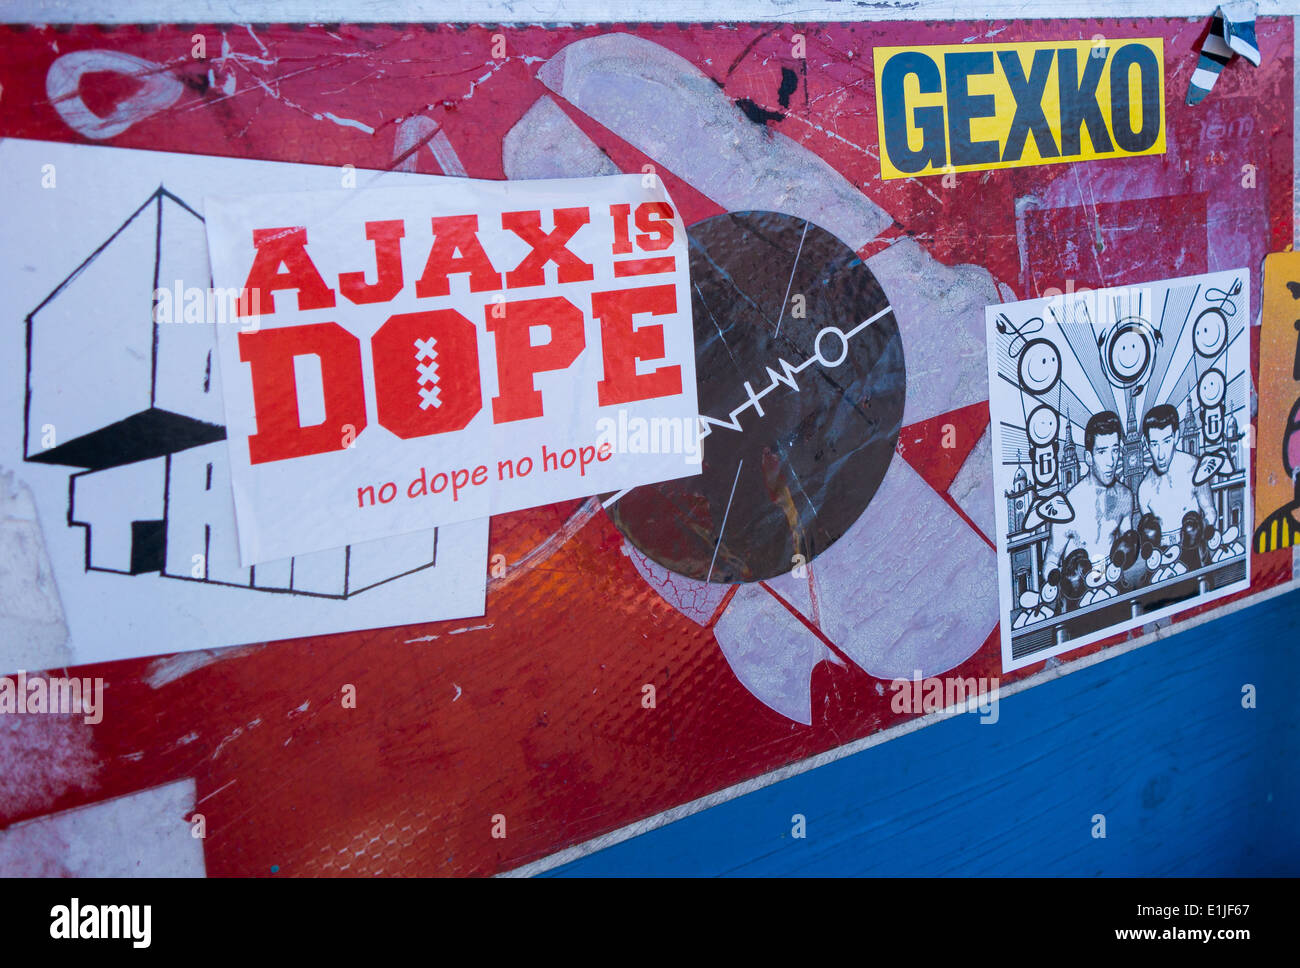 Ajax is dope sticker in Amsterdam - Stock Image